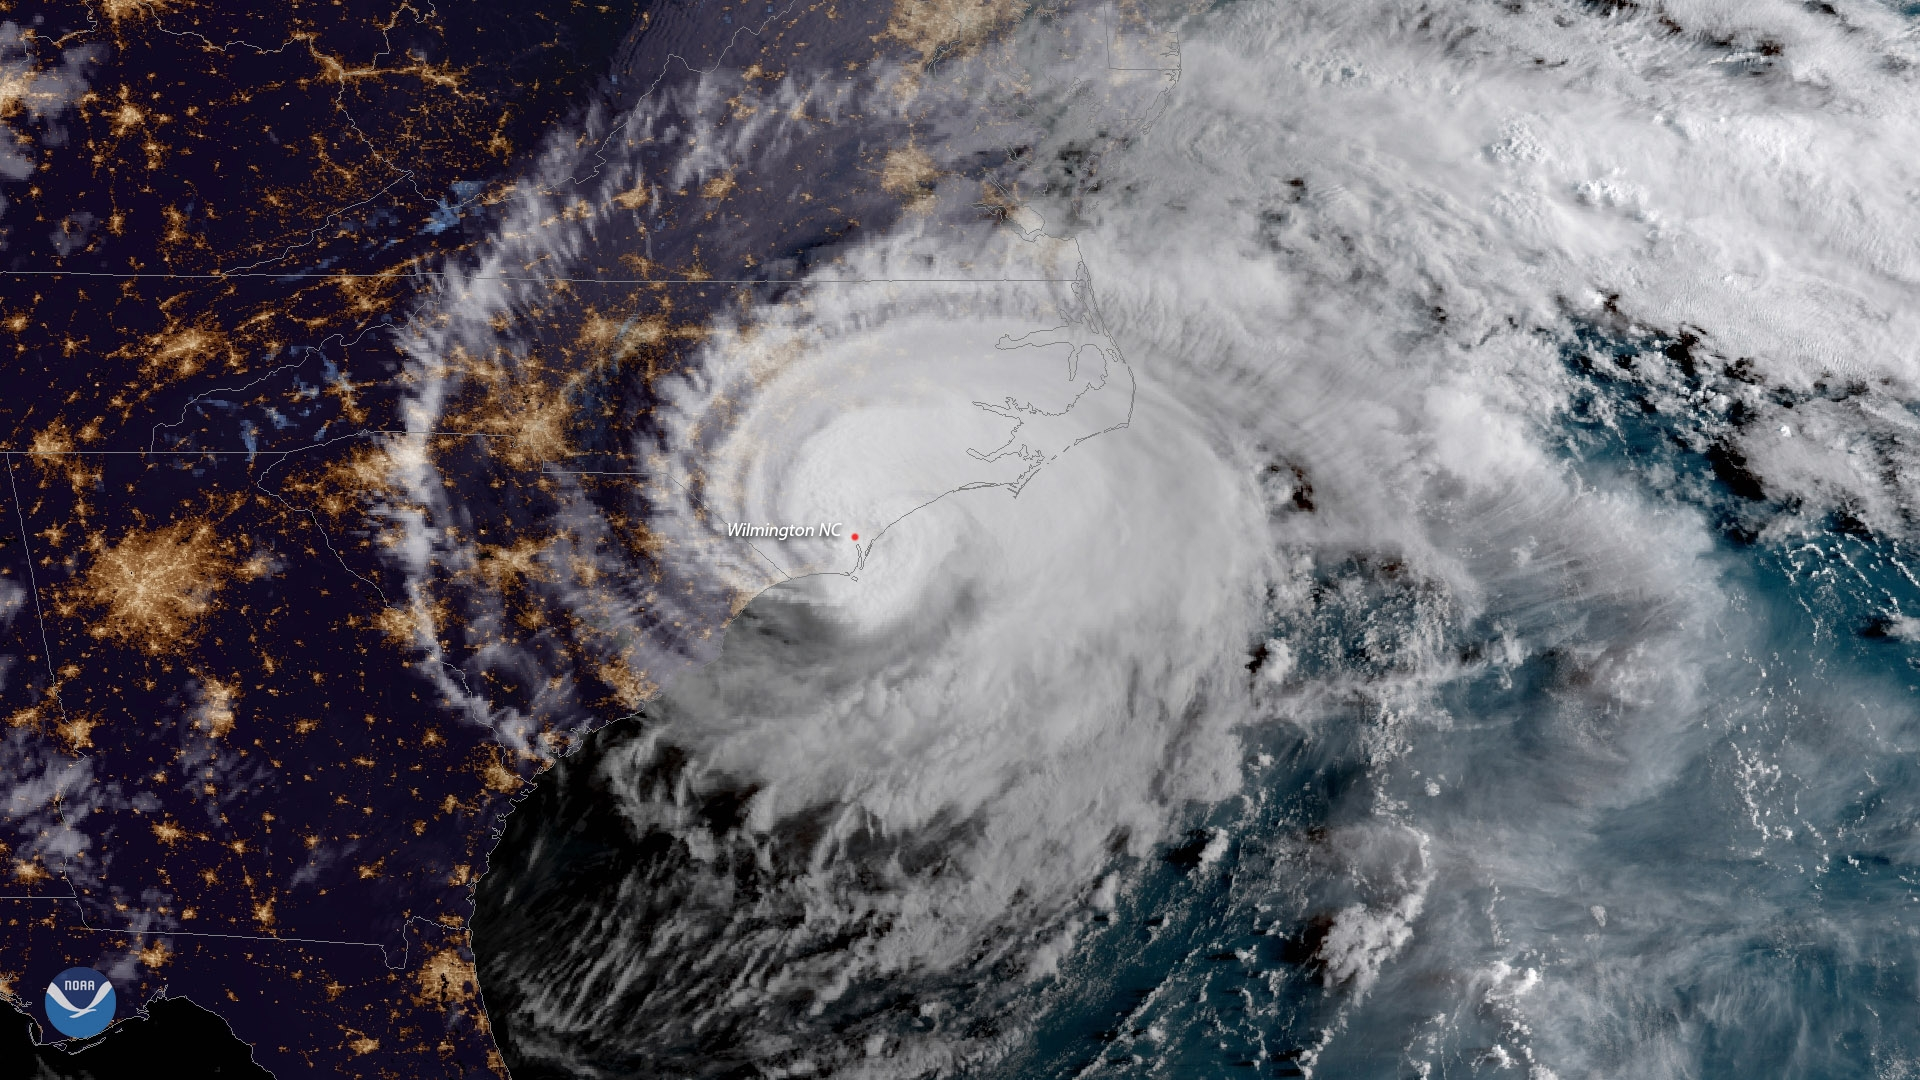 Hurricane Florence and Michael Names Retired